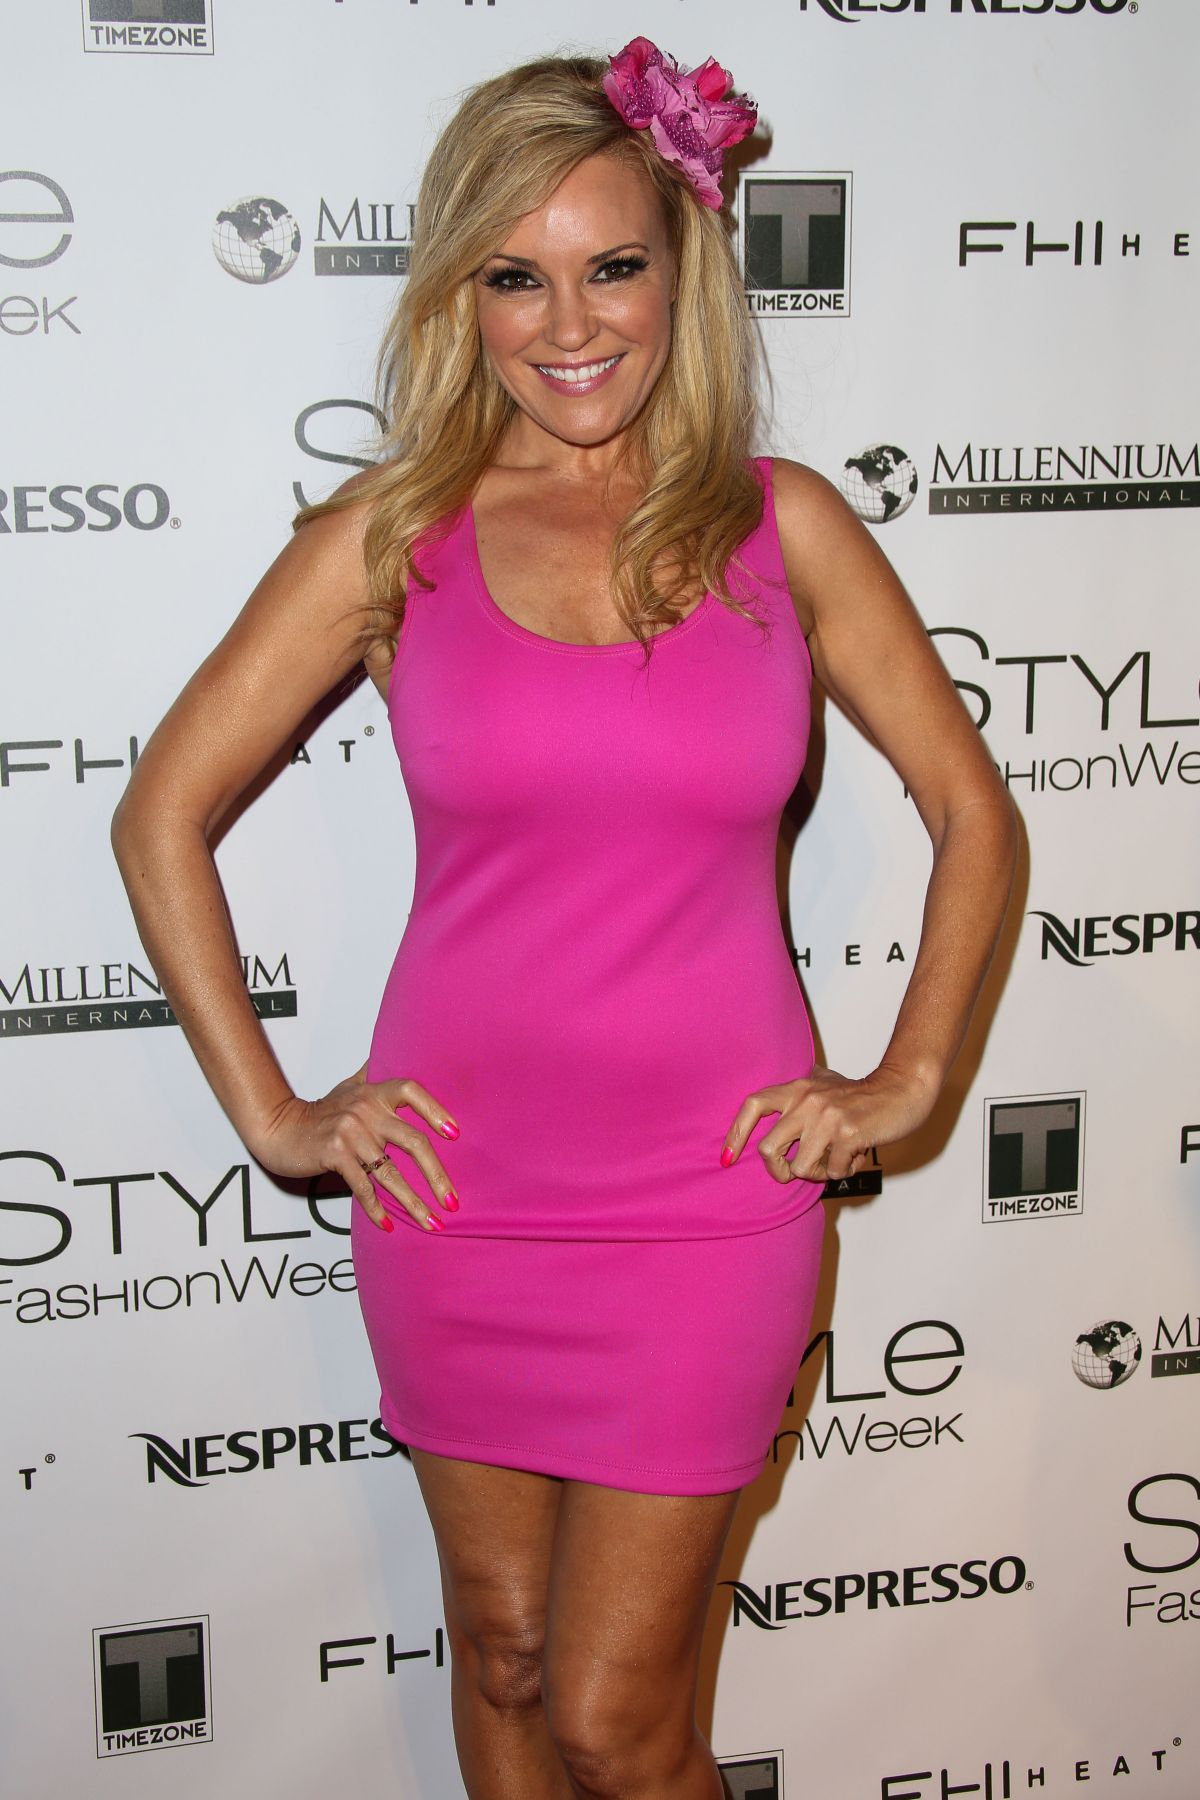 BRIDGET MARQUARDT at Style Fashion Week at LA Live Event Deck